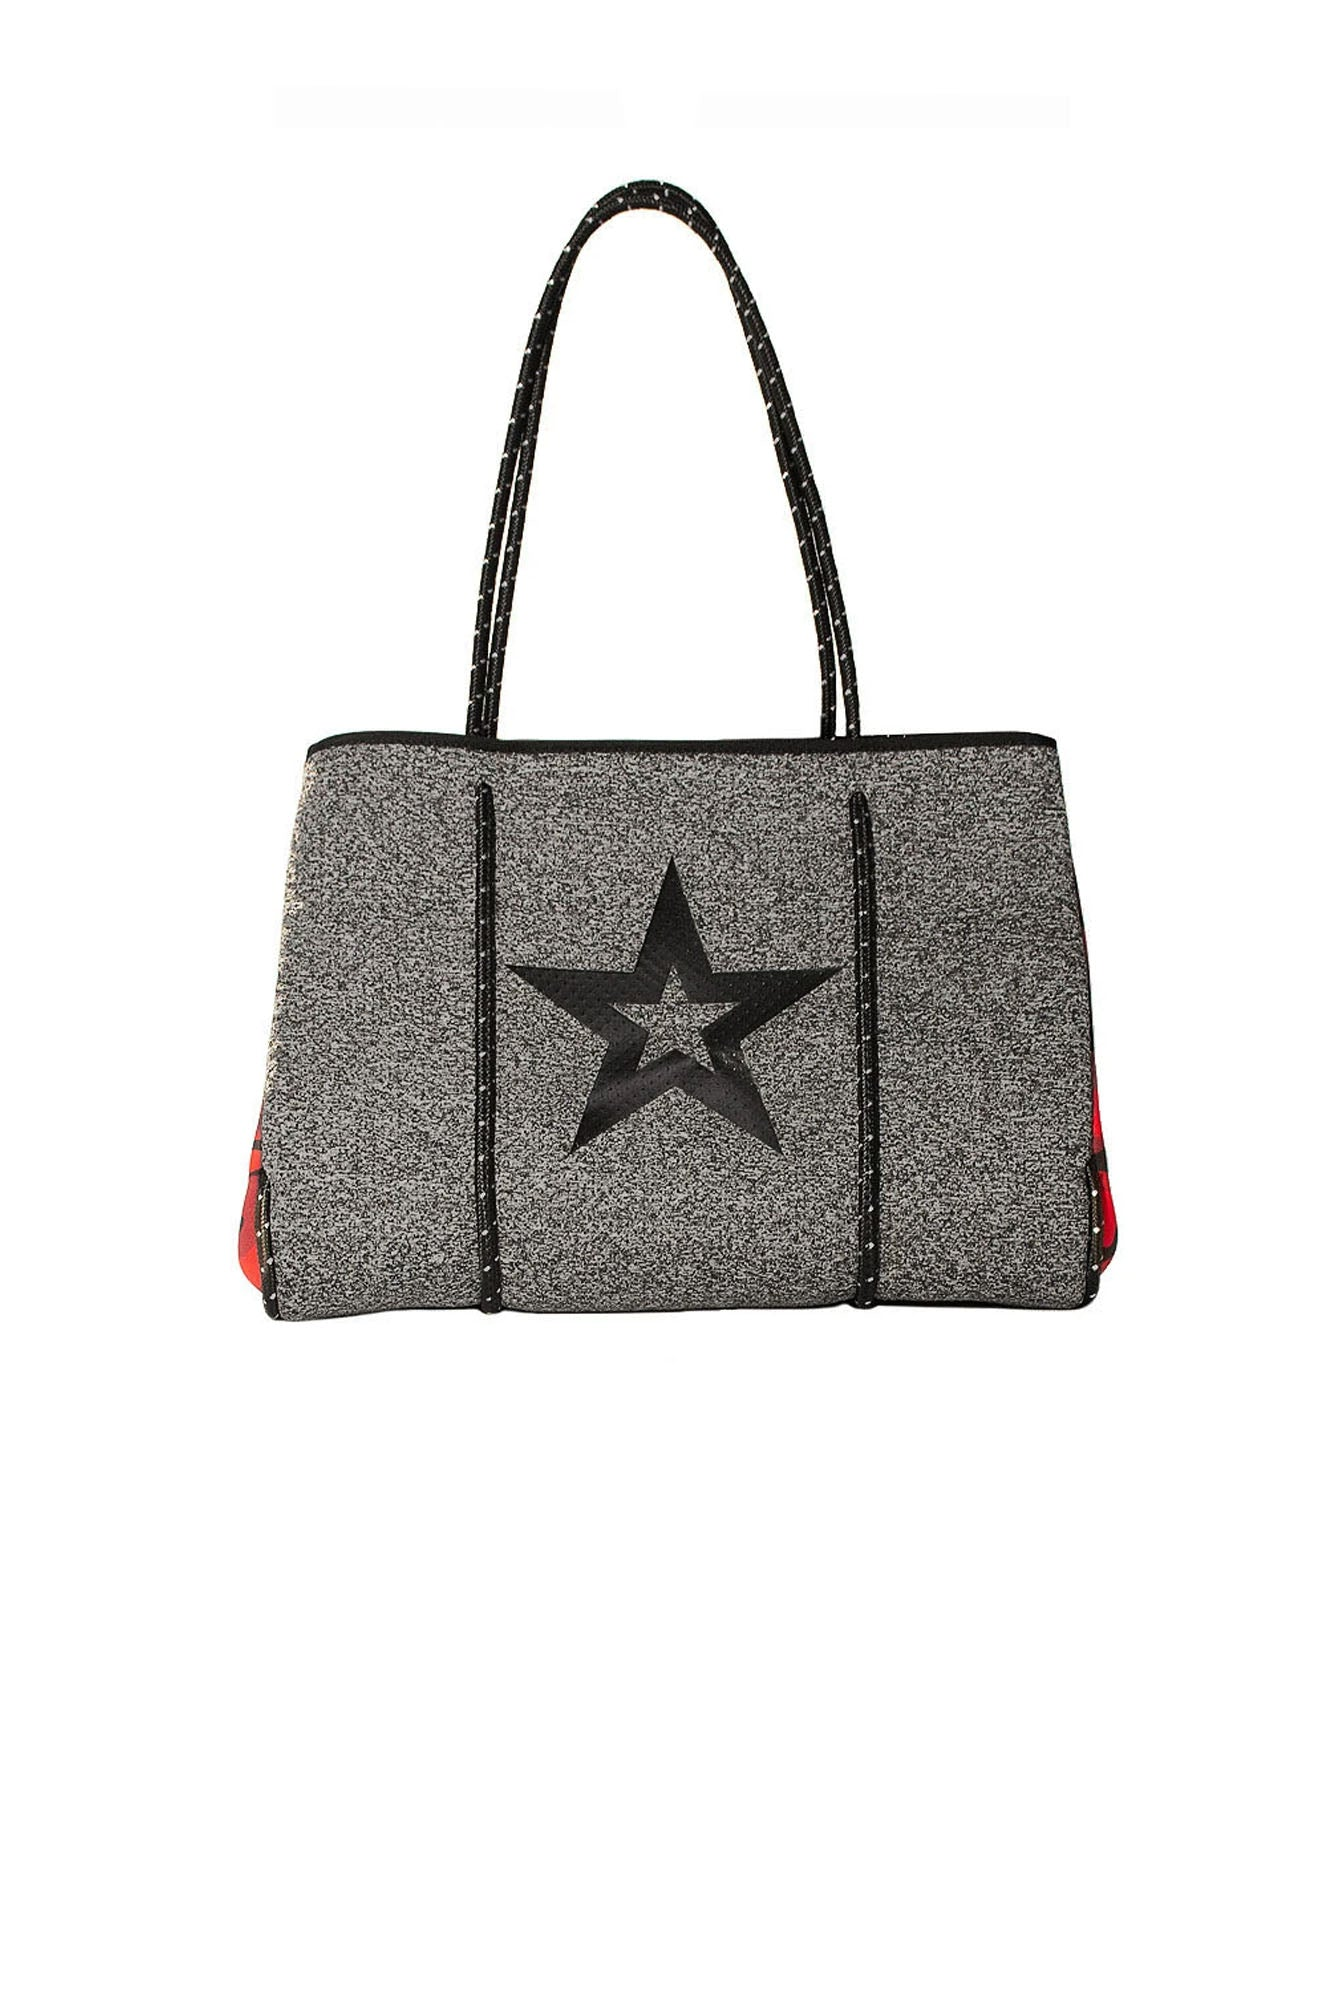 Haute Shore - Brave Neoprene Tote Bag w/Zipper Wristlet Inside (Greyson, Charcoal Marle/Black Star w/Red Camo Sides)